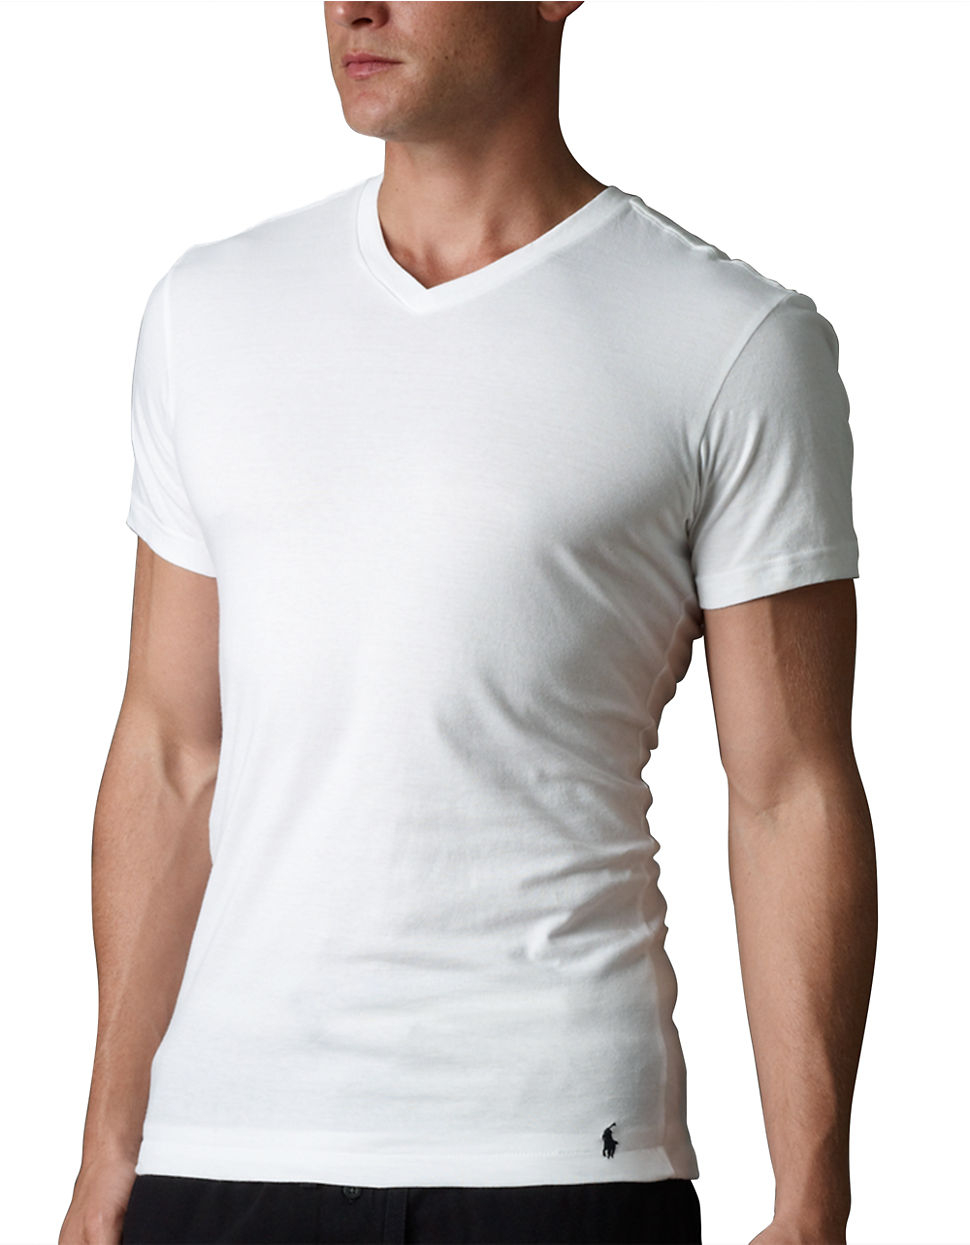 lyst polo ralph lauren slim fit v neck t shirt three pack in white for men. Black Bedroom Furniture Sets. Home Design Ideas